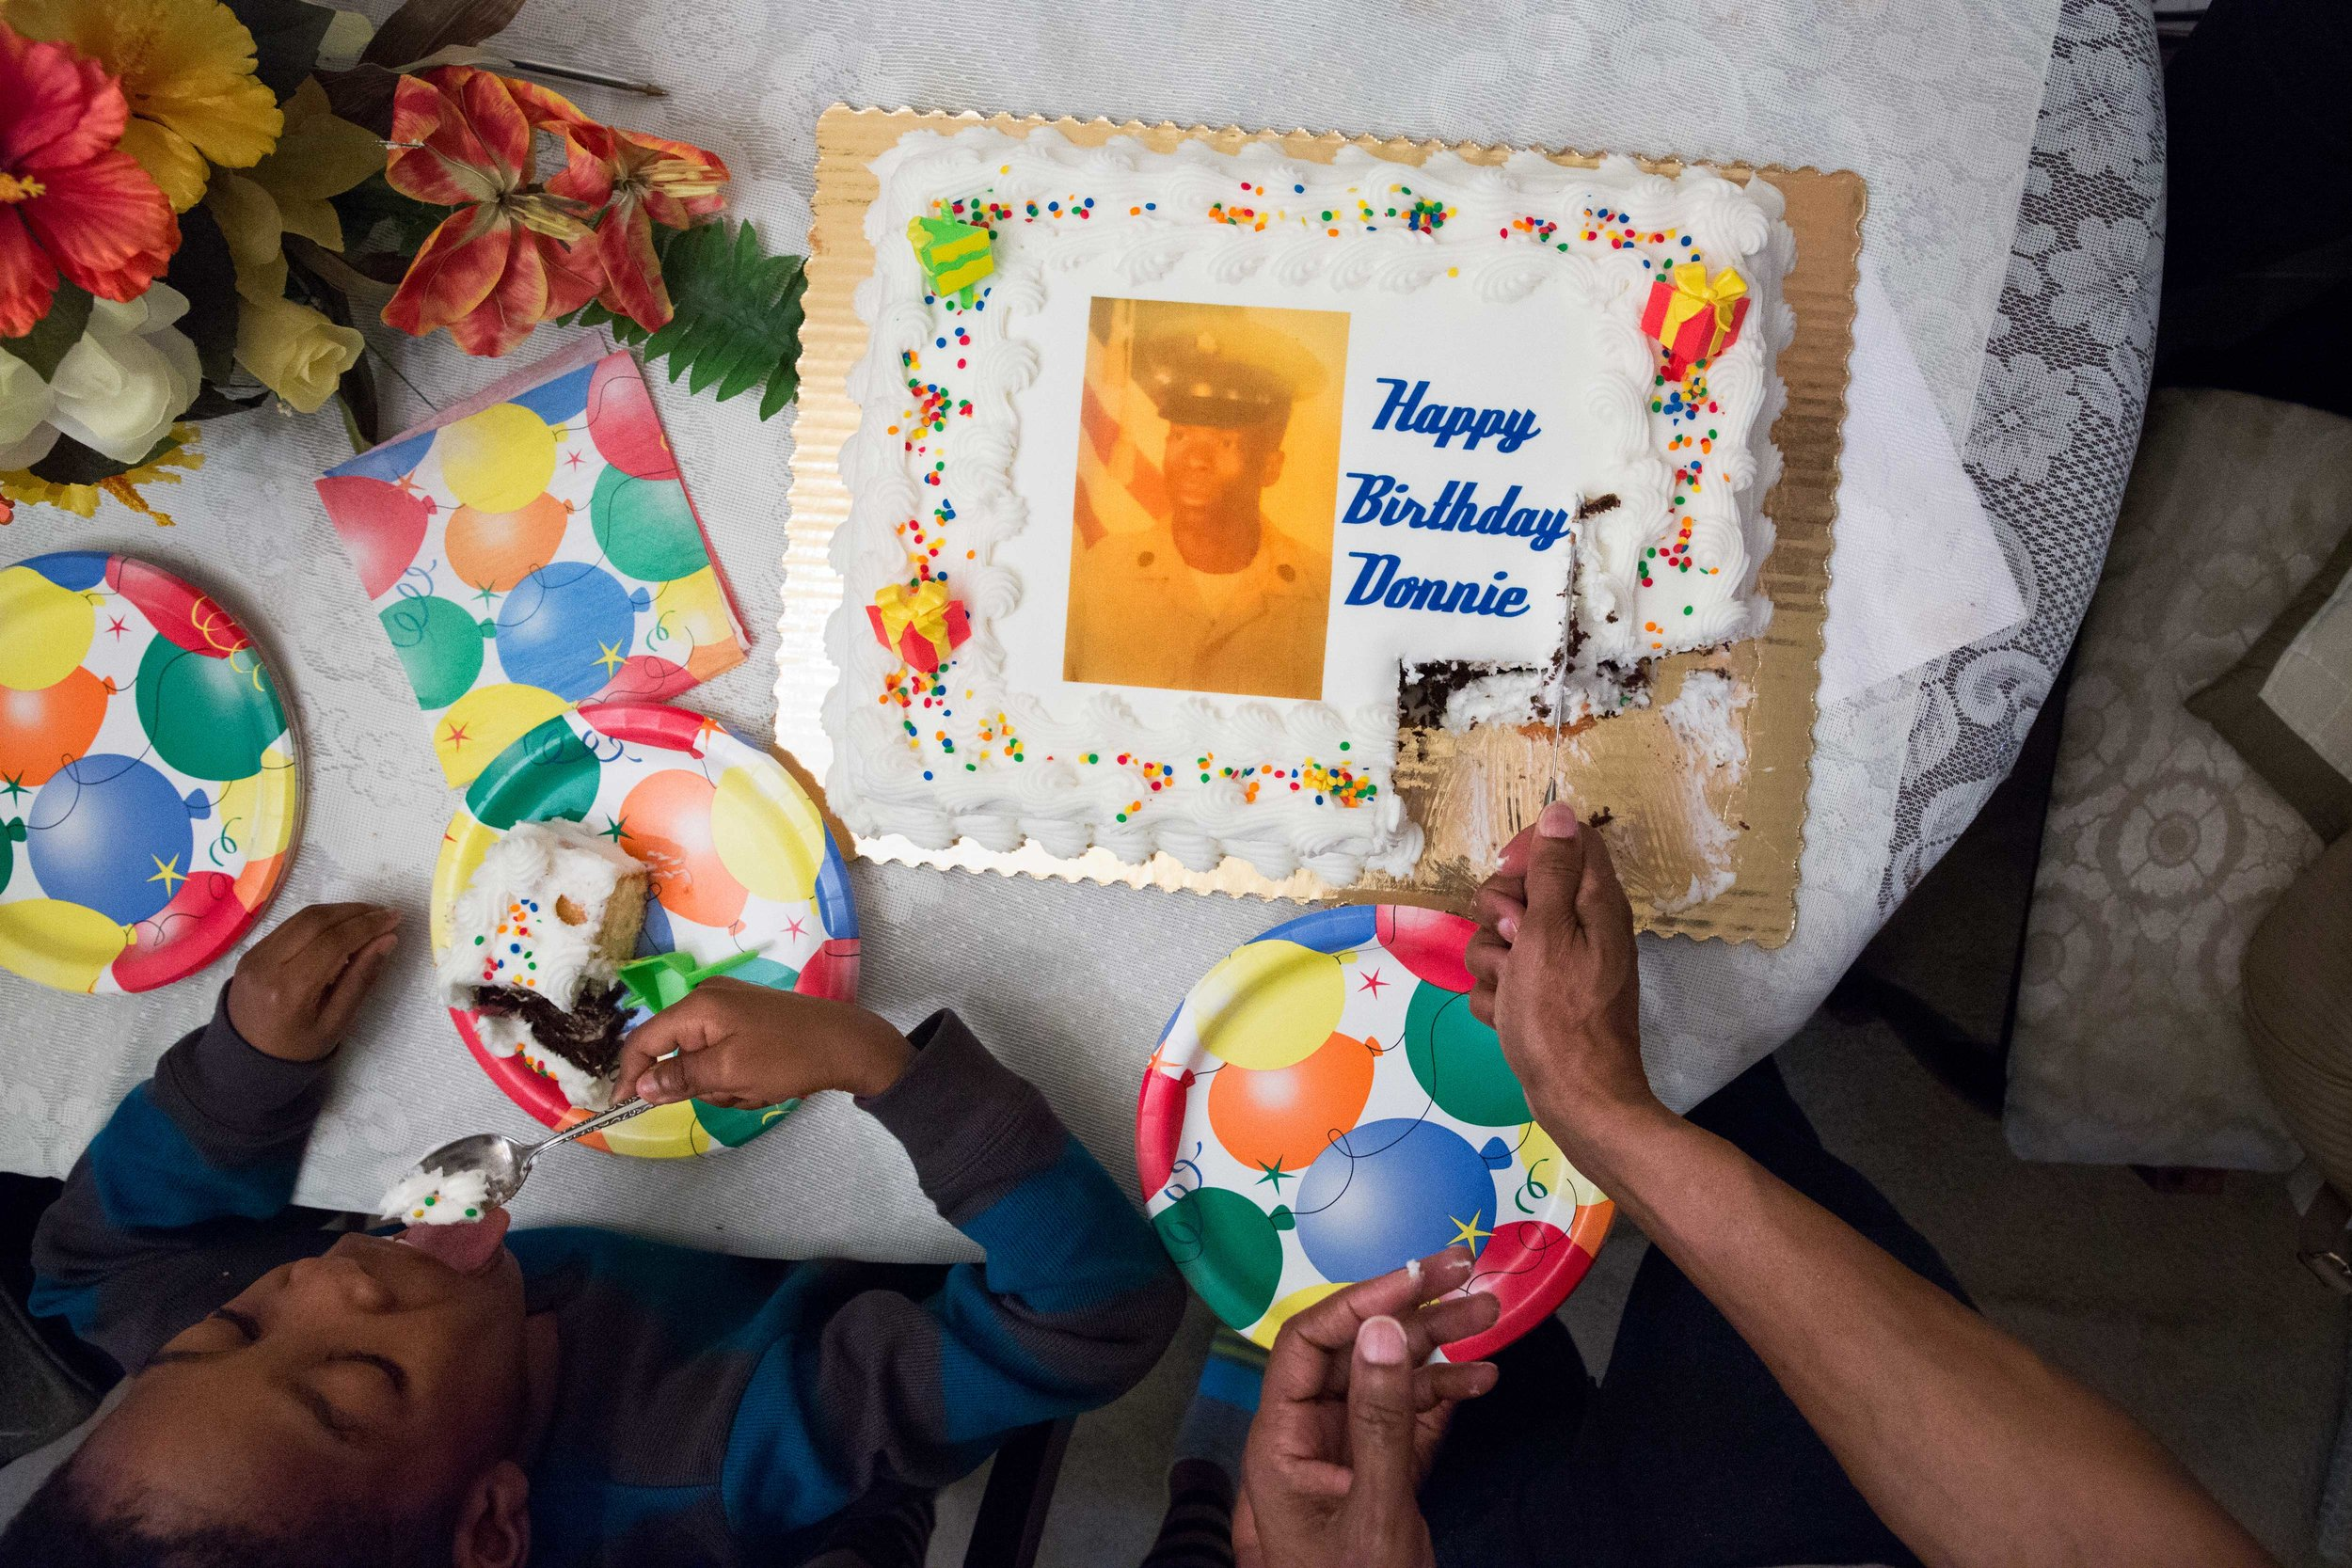 """Ronald, also known as """"Donnie"""" to his family, cuts into his 59th birthday cake with his great-nephew on his left, on January 10, 2016. This birthday marked his first birthday out of prison; the last birthday he remembers as a free man, he was the age of the picture on his cake."""